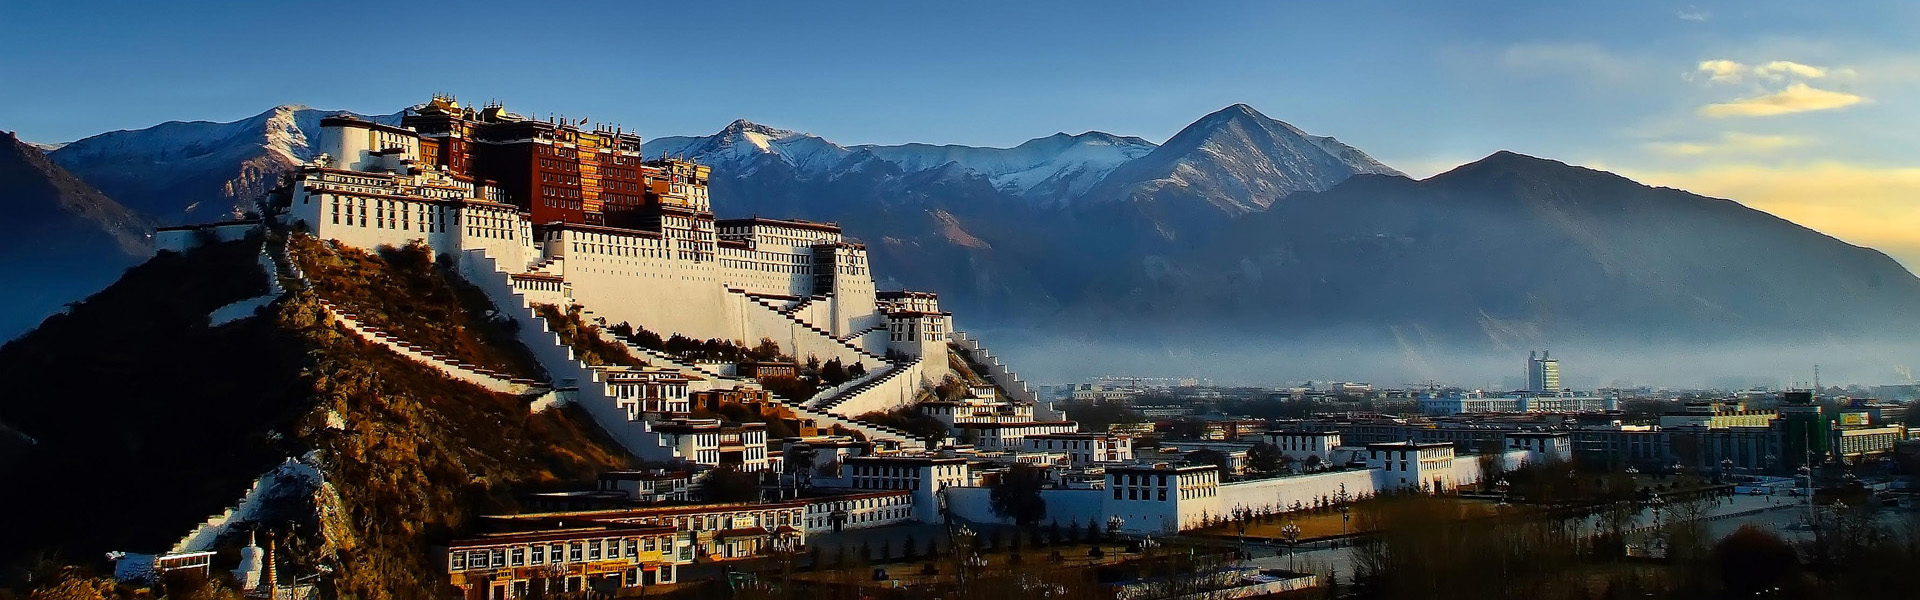 Lhasa, the capitabl of mysterious Tibet